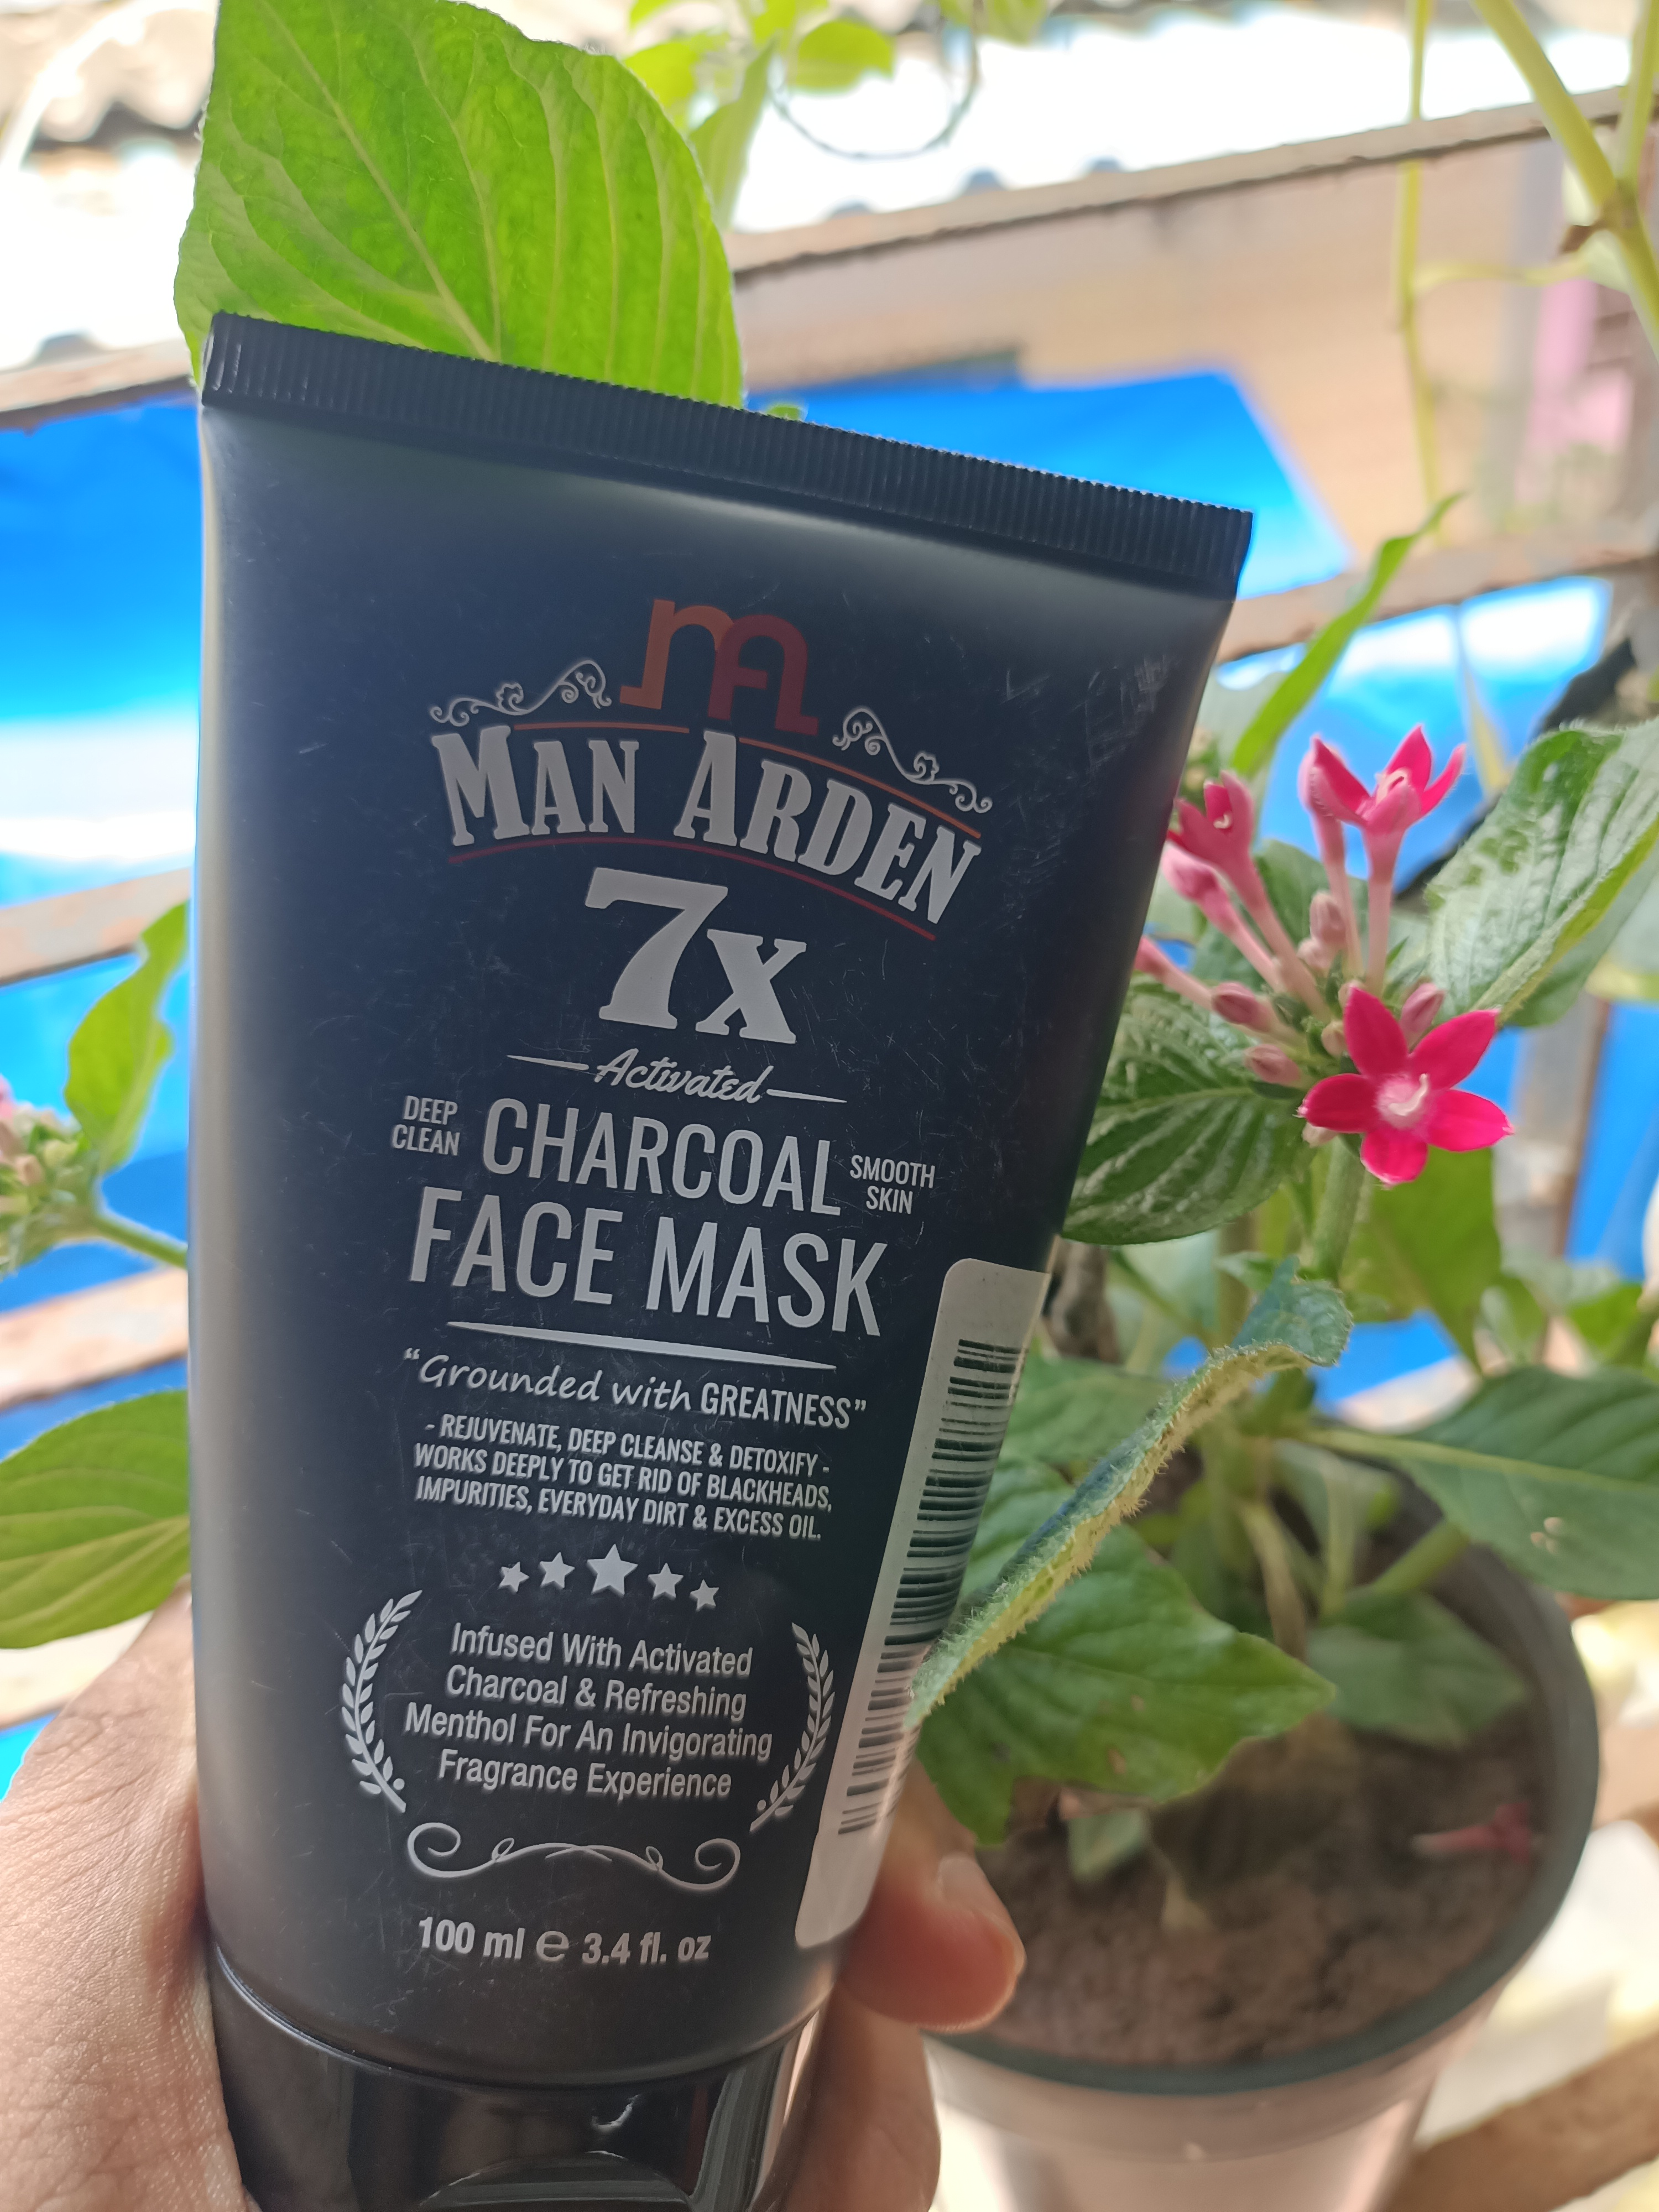 Man Arden 7X Activated Charcoal Face Mask -Best Charcoal FaceMask-By sapan